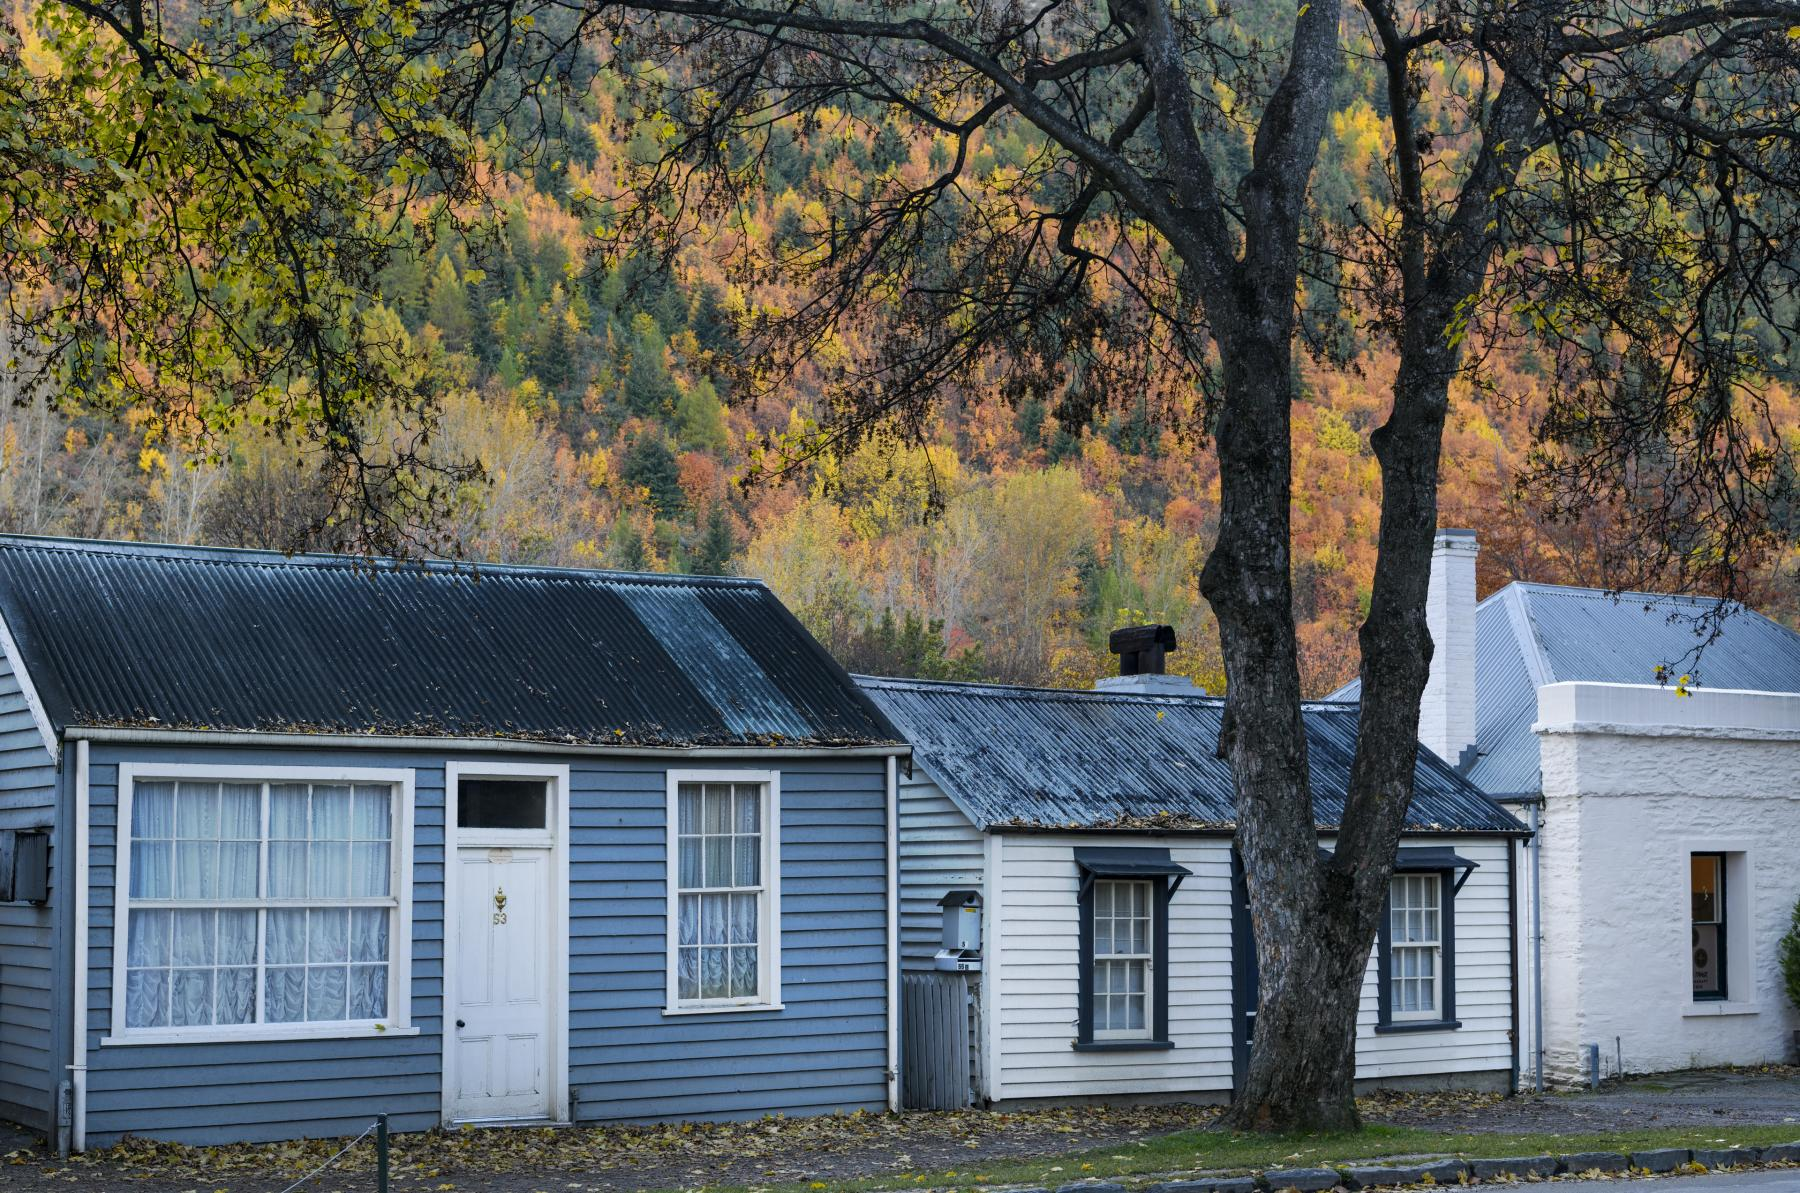 Arrowtown Miners Cottages